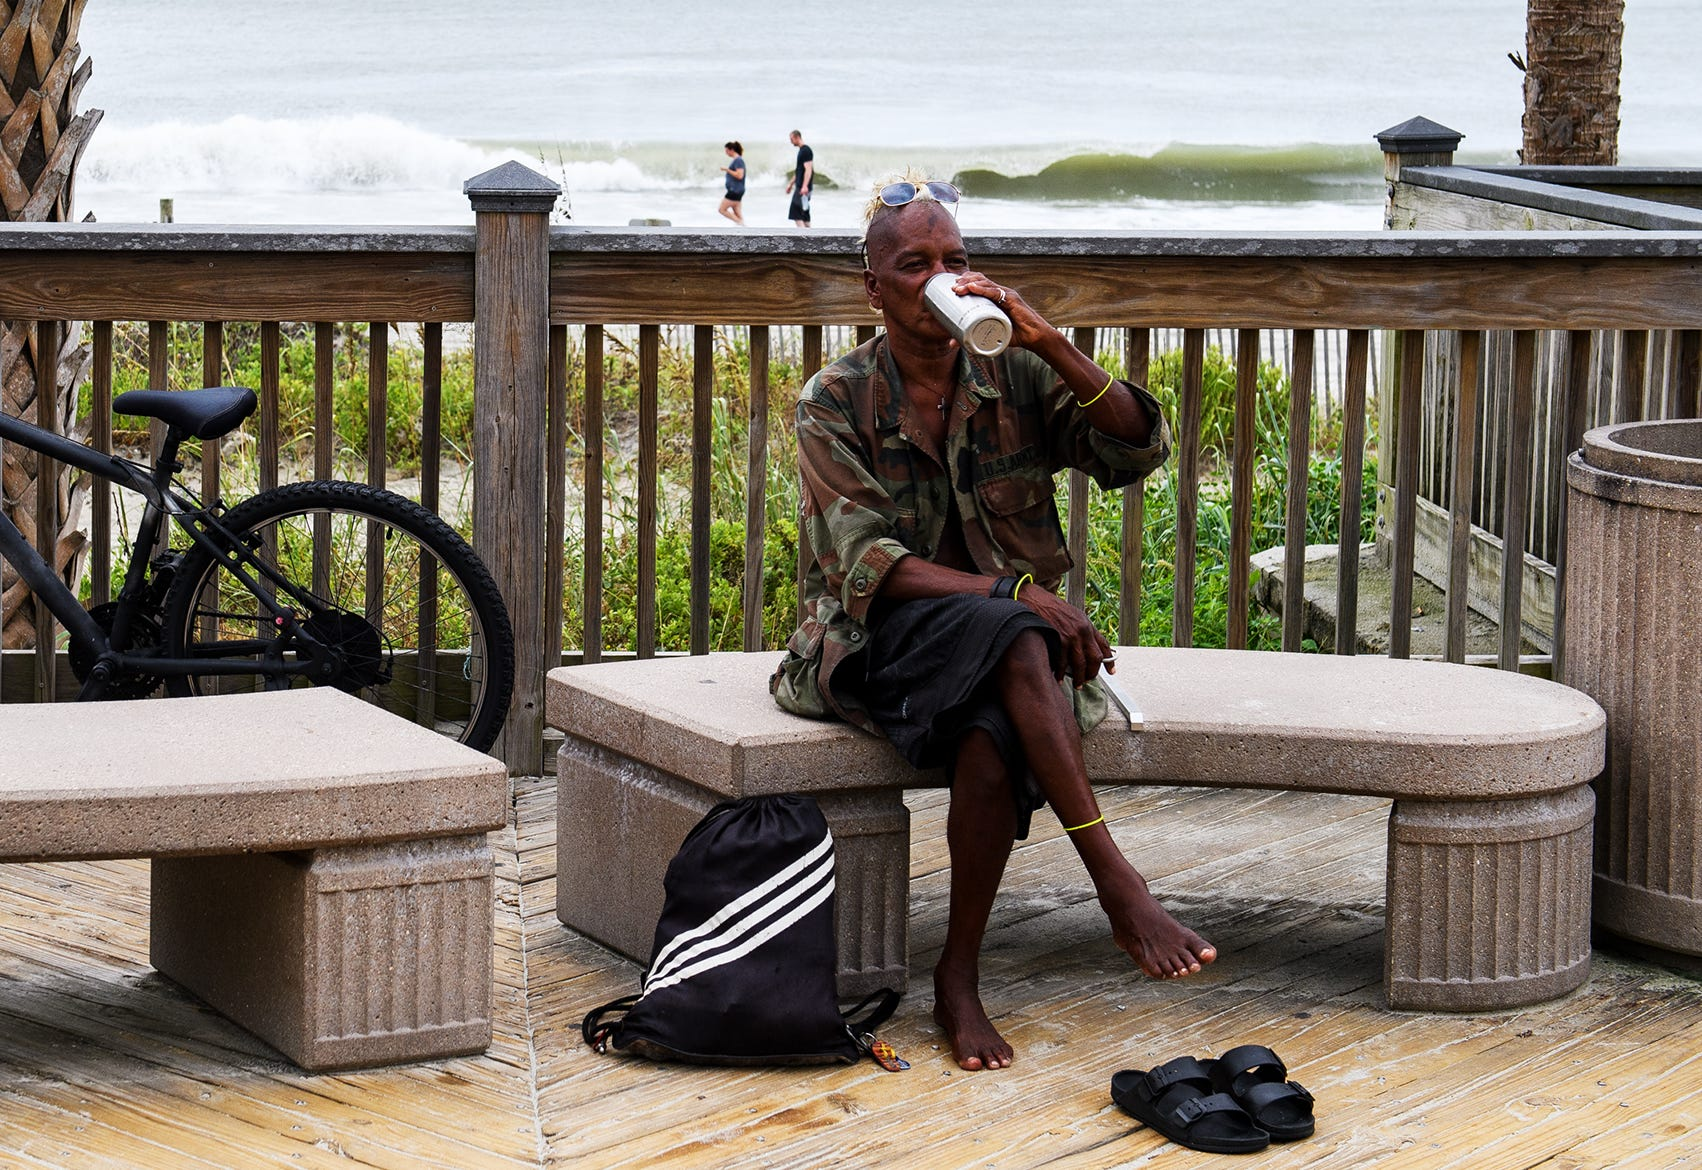 """Shane """"Rooster"""" Bacchus, a homeless man living in Myrtle Beach, S.C., takes a drink from his water bottle at the Myrtle Beach Boardwalk and Promenade on Sept. 13, 2018. Bacchus said he will be sleeping in a truck during Hurricane Florence."""